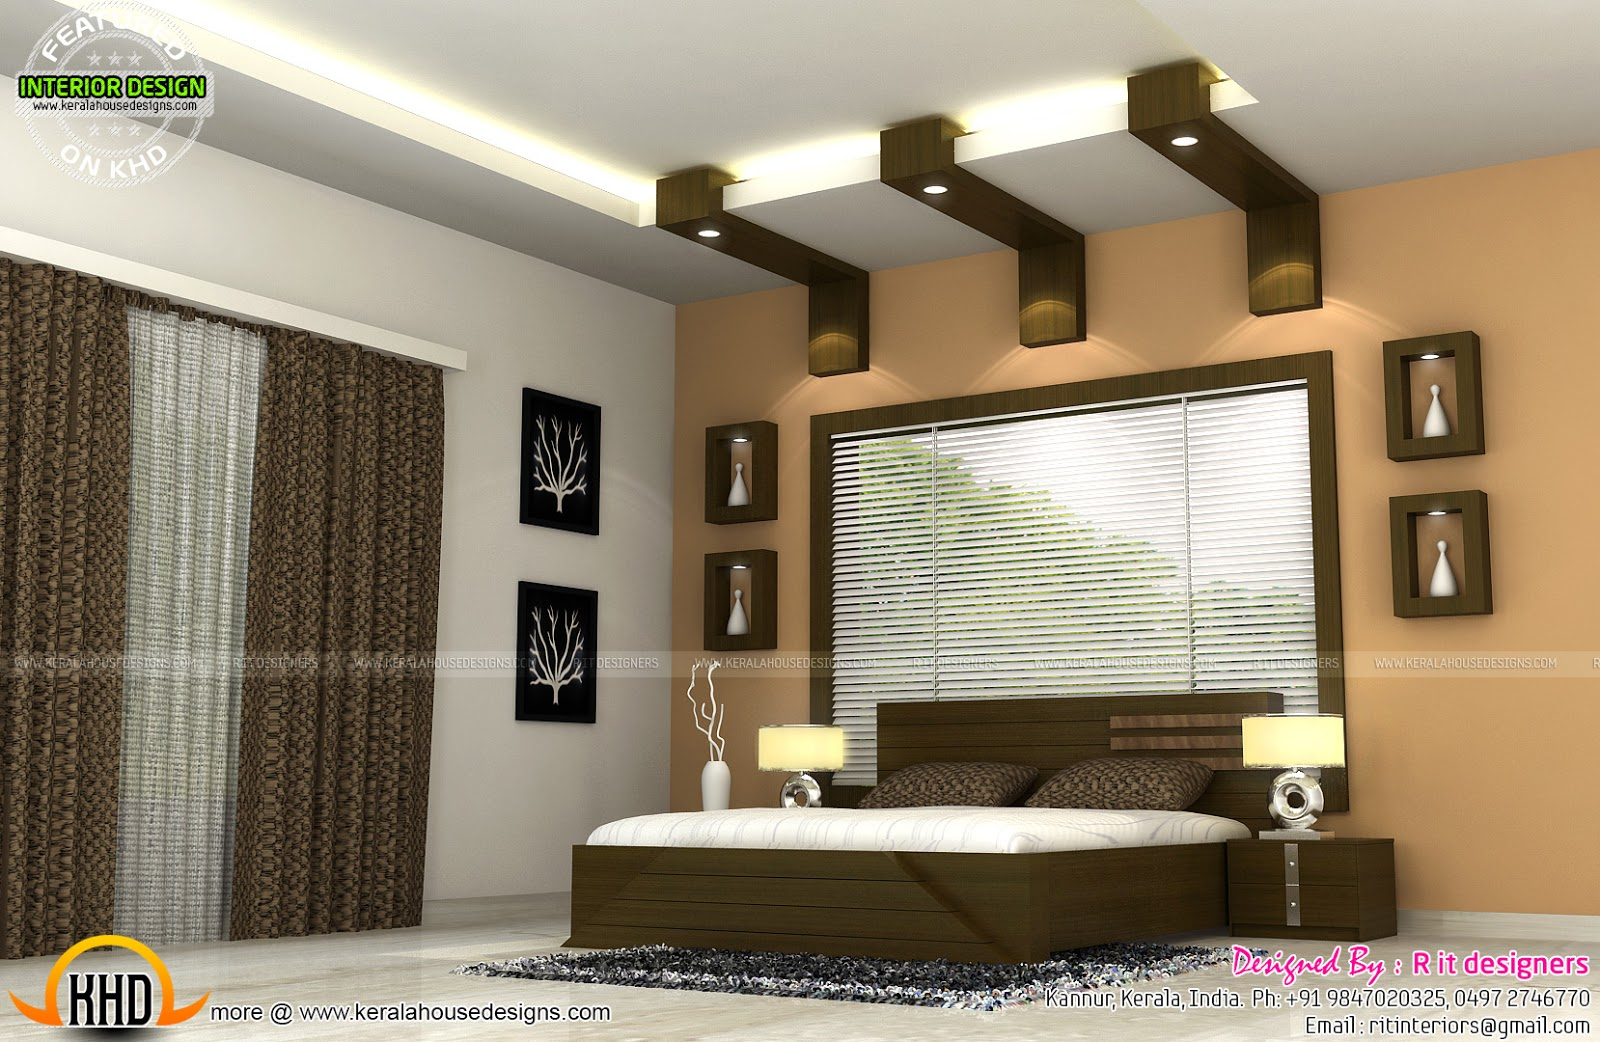 Interiors of bedrooms and kitchen kerala home design and for Dining room ideas kerala